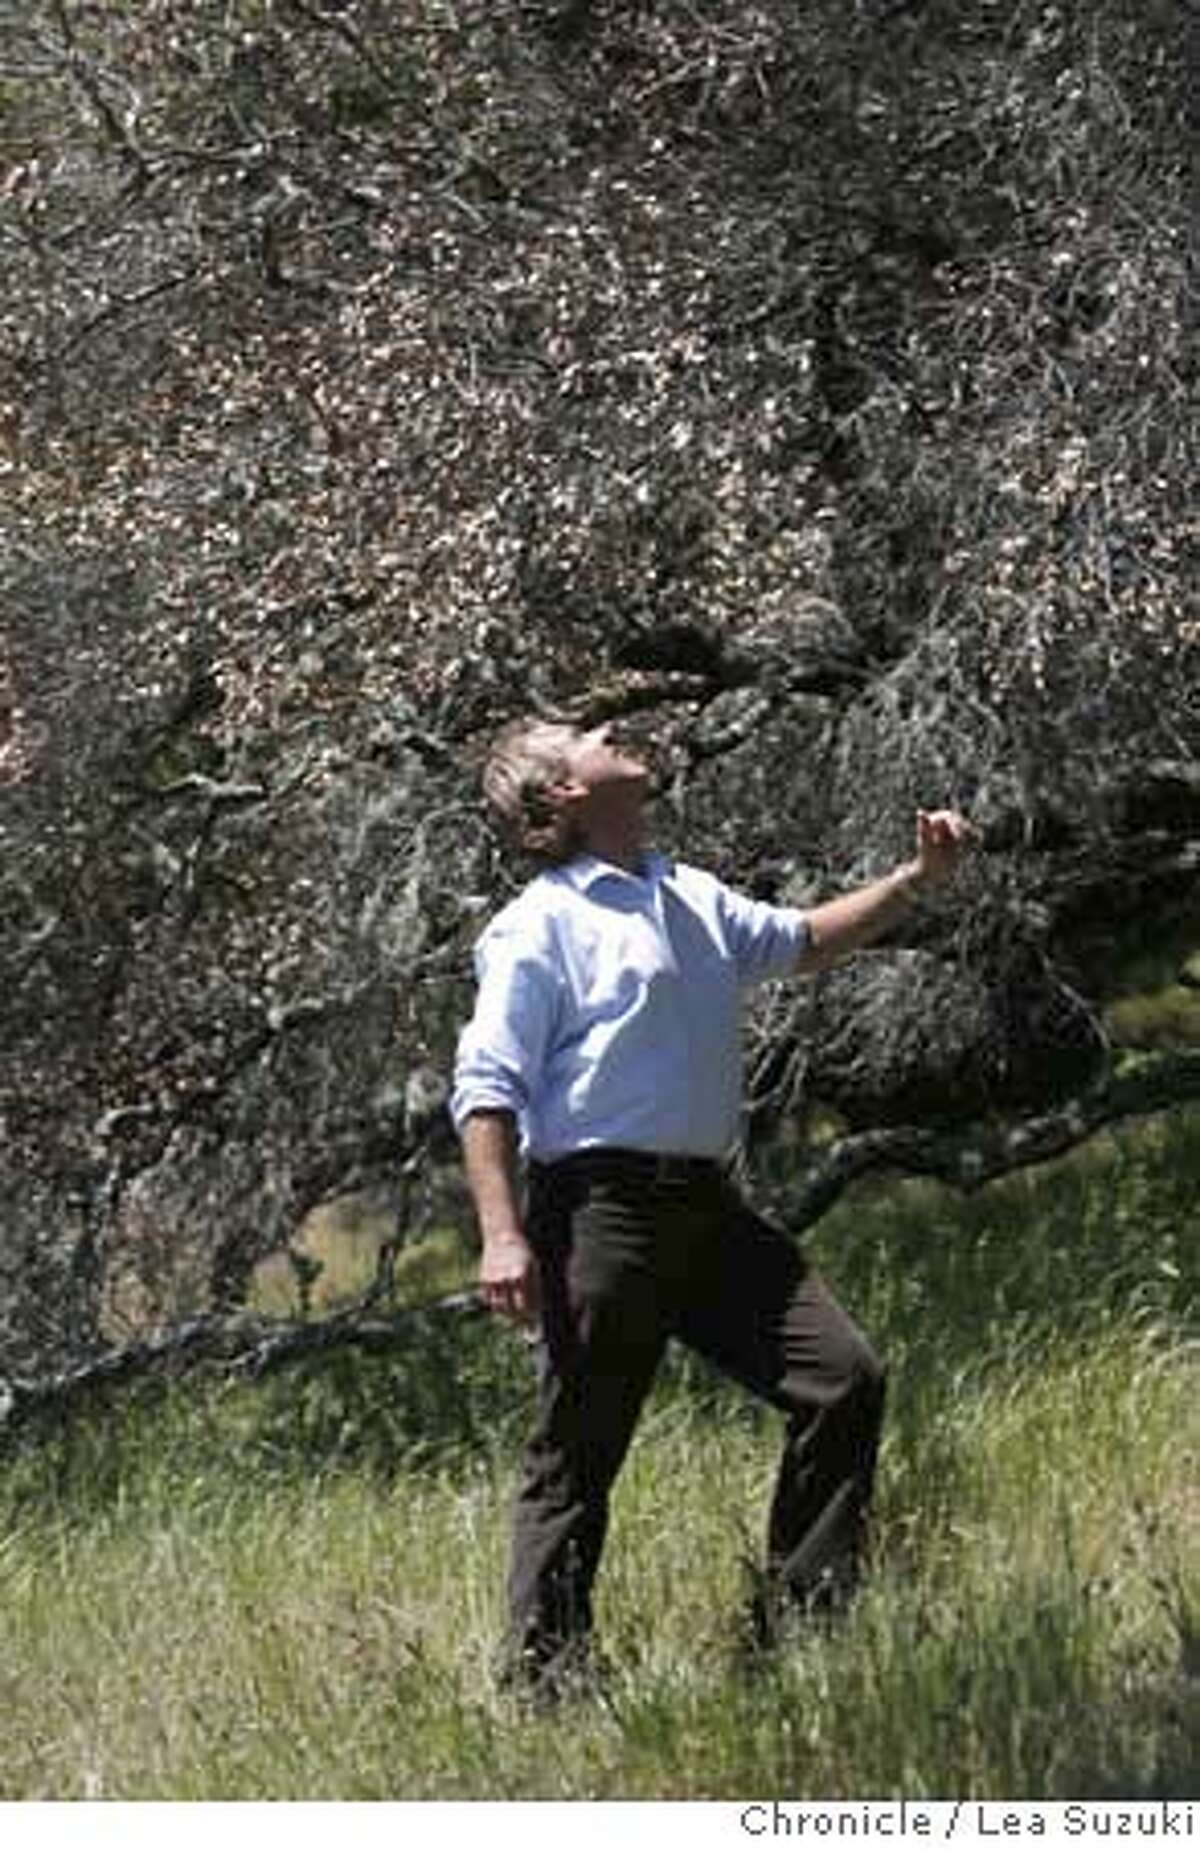 ###Live Caption:UC Berkeley Professor Matteo Garbelotto checks the dryness of a dying Oak tree on Mt. Tam near San Anselmo, Calif. on Wednesday, April 16 2008. UC Berkeley Professor Matteo Garbelotto, who has been studying Sudden Oak for a decade, has pinpointed where it started in the wild -- Mt. Tam and Santa Cruz. Photo By Lea Suzuki/ San Francisco Chronicle###Caption History:UC Berkeley Professor Matteo Garbelotto checks the dryness of a dying Oak tree on Mt. Tam near San Anselmo, Calif. on Wednesday, April 16 2008. UC Berkeley Professor Matteo Garbelotto, who has been studying Sudden Oak for a decade, has pinpointed where it started in the wild -- Mt. Tam and Santa Cruz. Photo By Lea Suzuki/ San Francisco Chronicle###Notes:###Special Instructions:�2008, San Francisco Chronicle/ Lea Suzuki MANDATORY CREDIT FOR PHOTOG AND SAN FRANCISCO CHRONICLE. NO SALES- MAGS OUT.